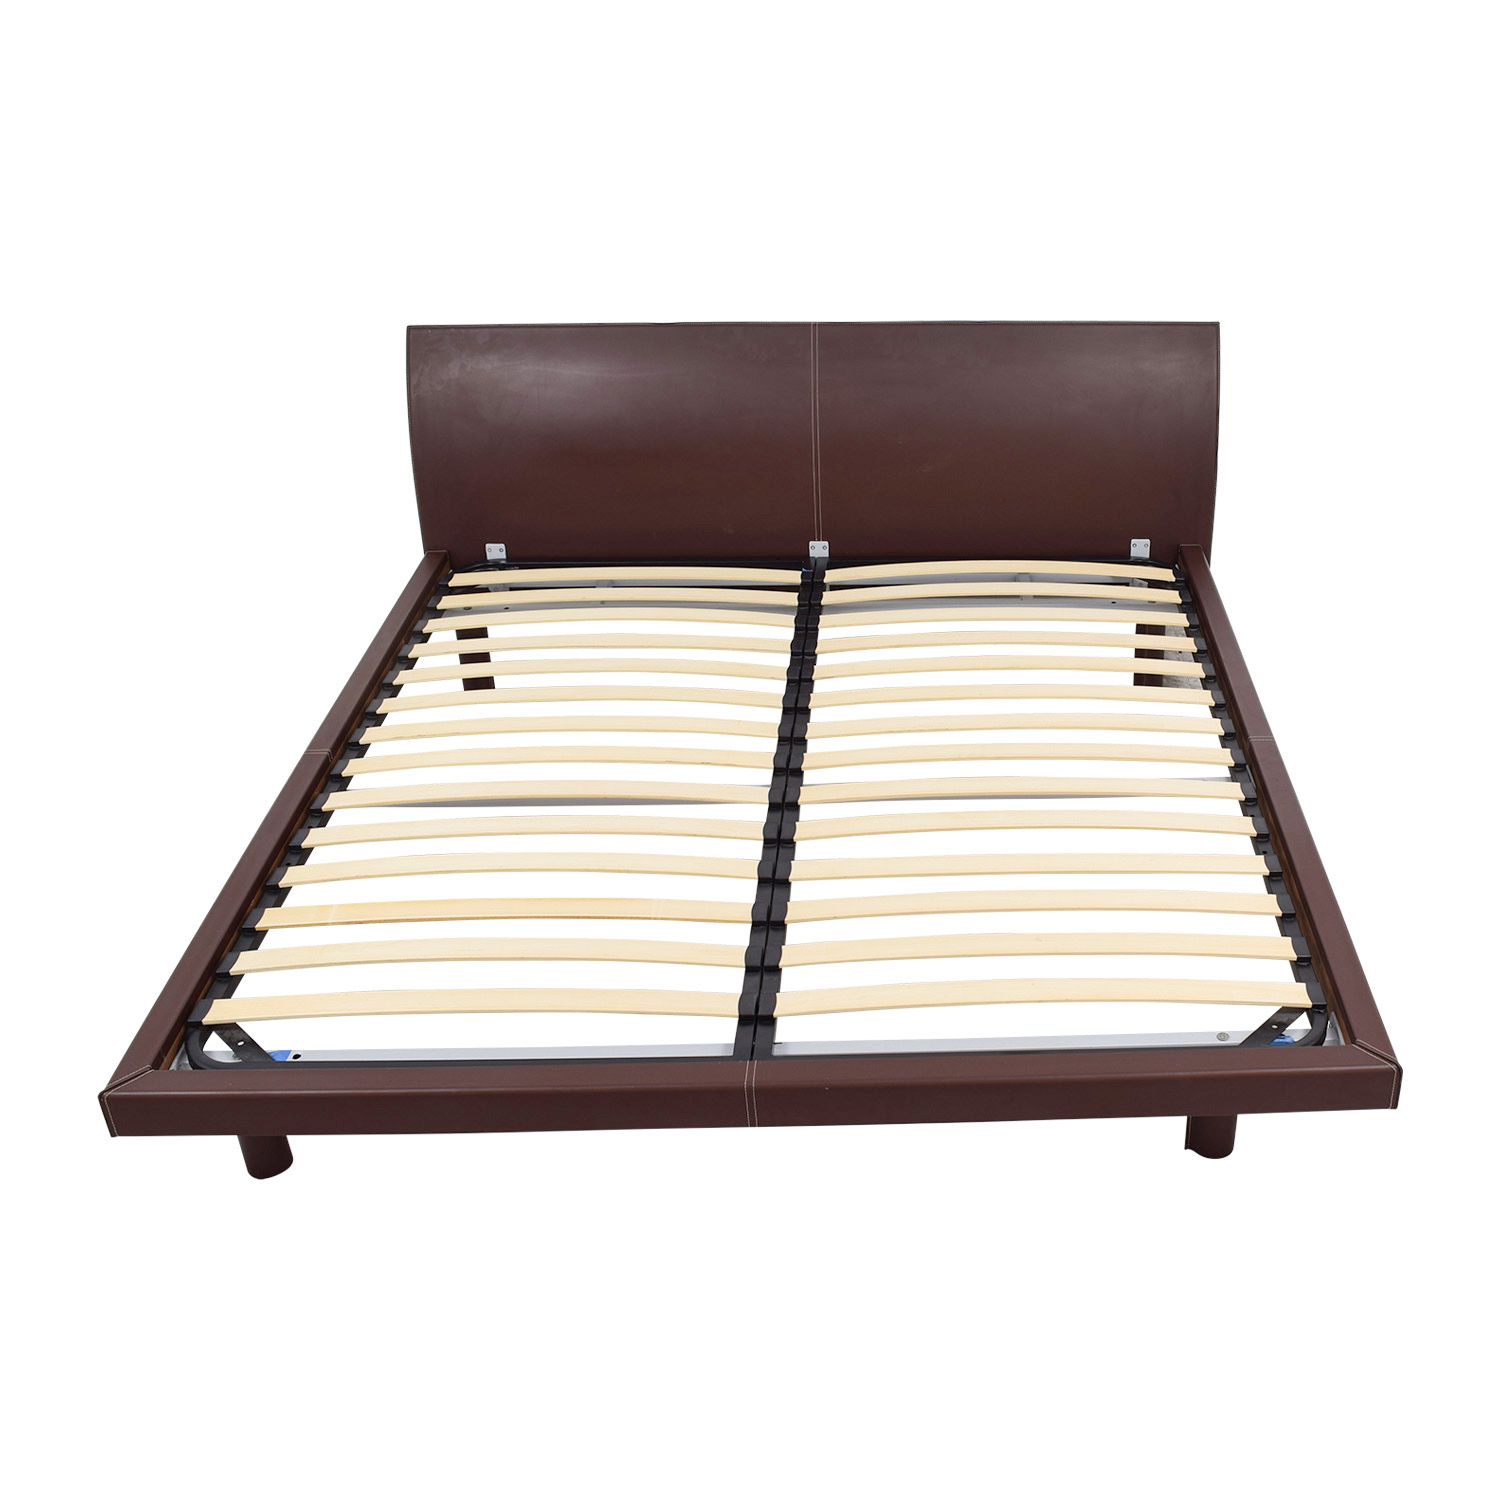 Calligaris Calligaris Concorde Leather King Bed for sale